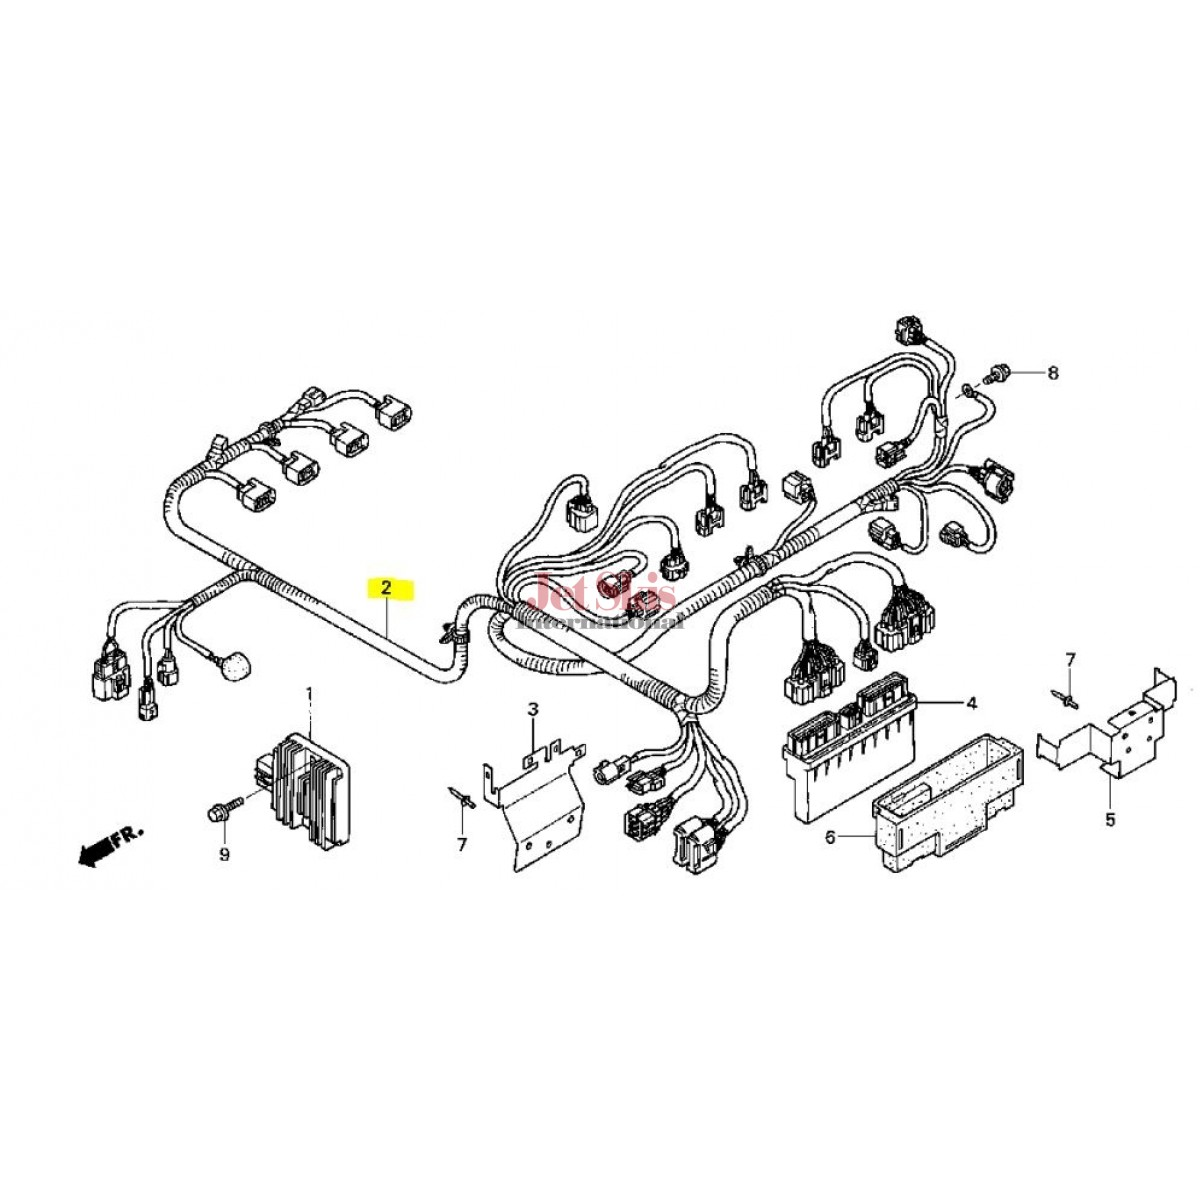 Honda Aquatrax Engine Ignition Diagram Html